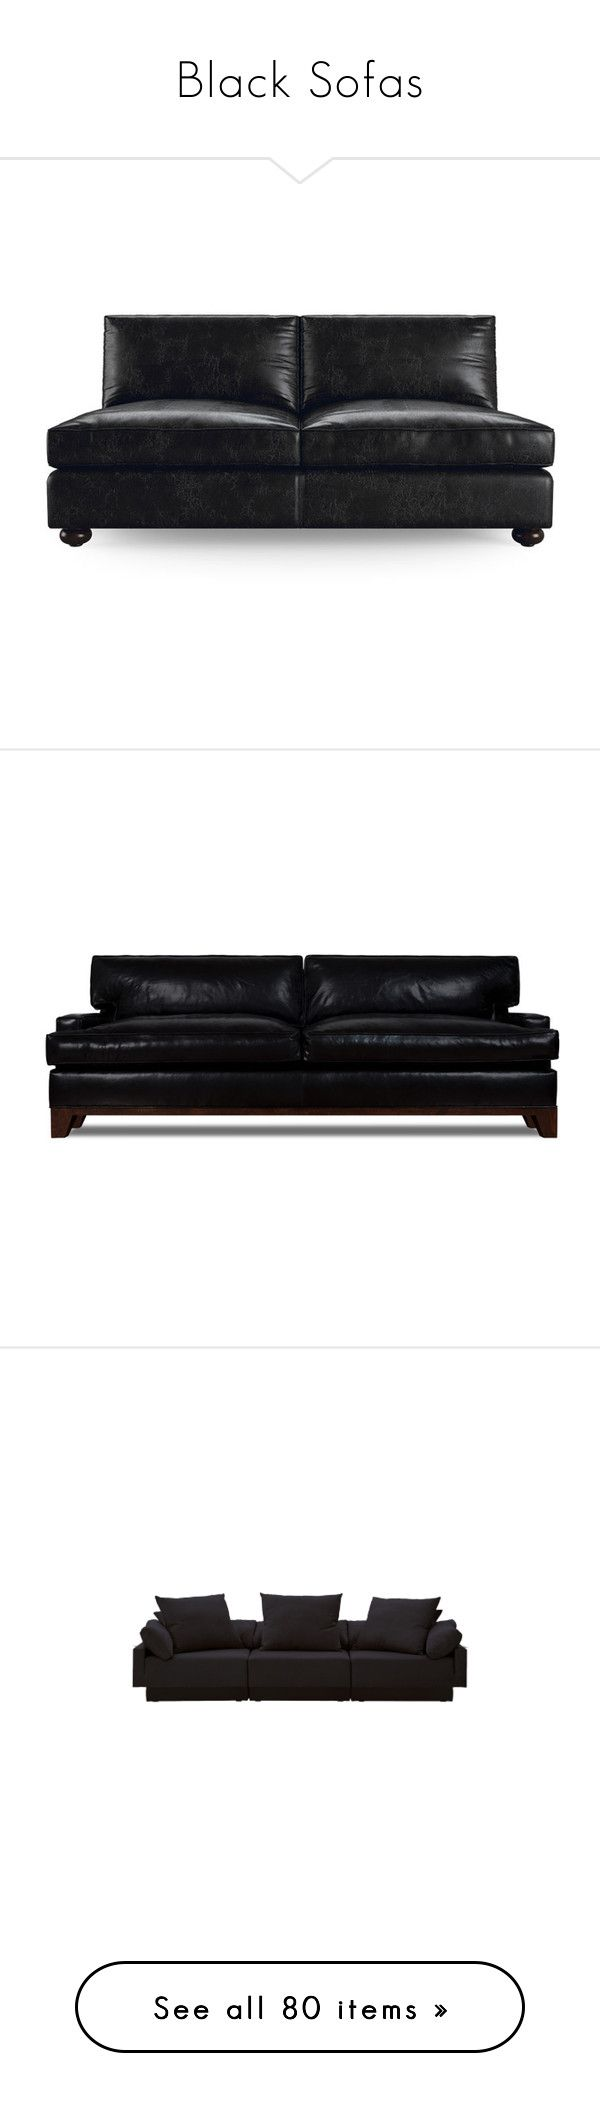 """Black Sofas"" by lailoooo ❤ liked on Polyvore featuring home, furniture, sofas, black, loveseats, leather couch, leather furniture, olive green couch, black loveseat and leather loveseat"